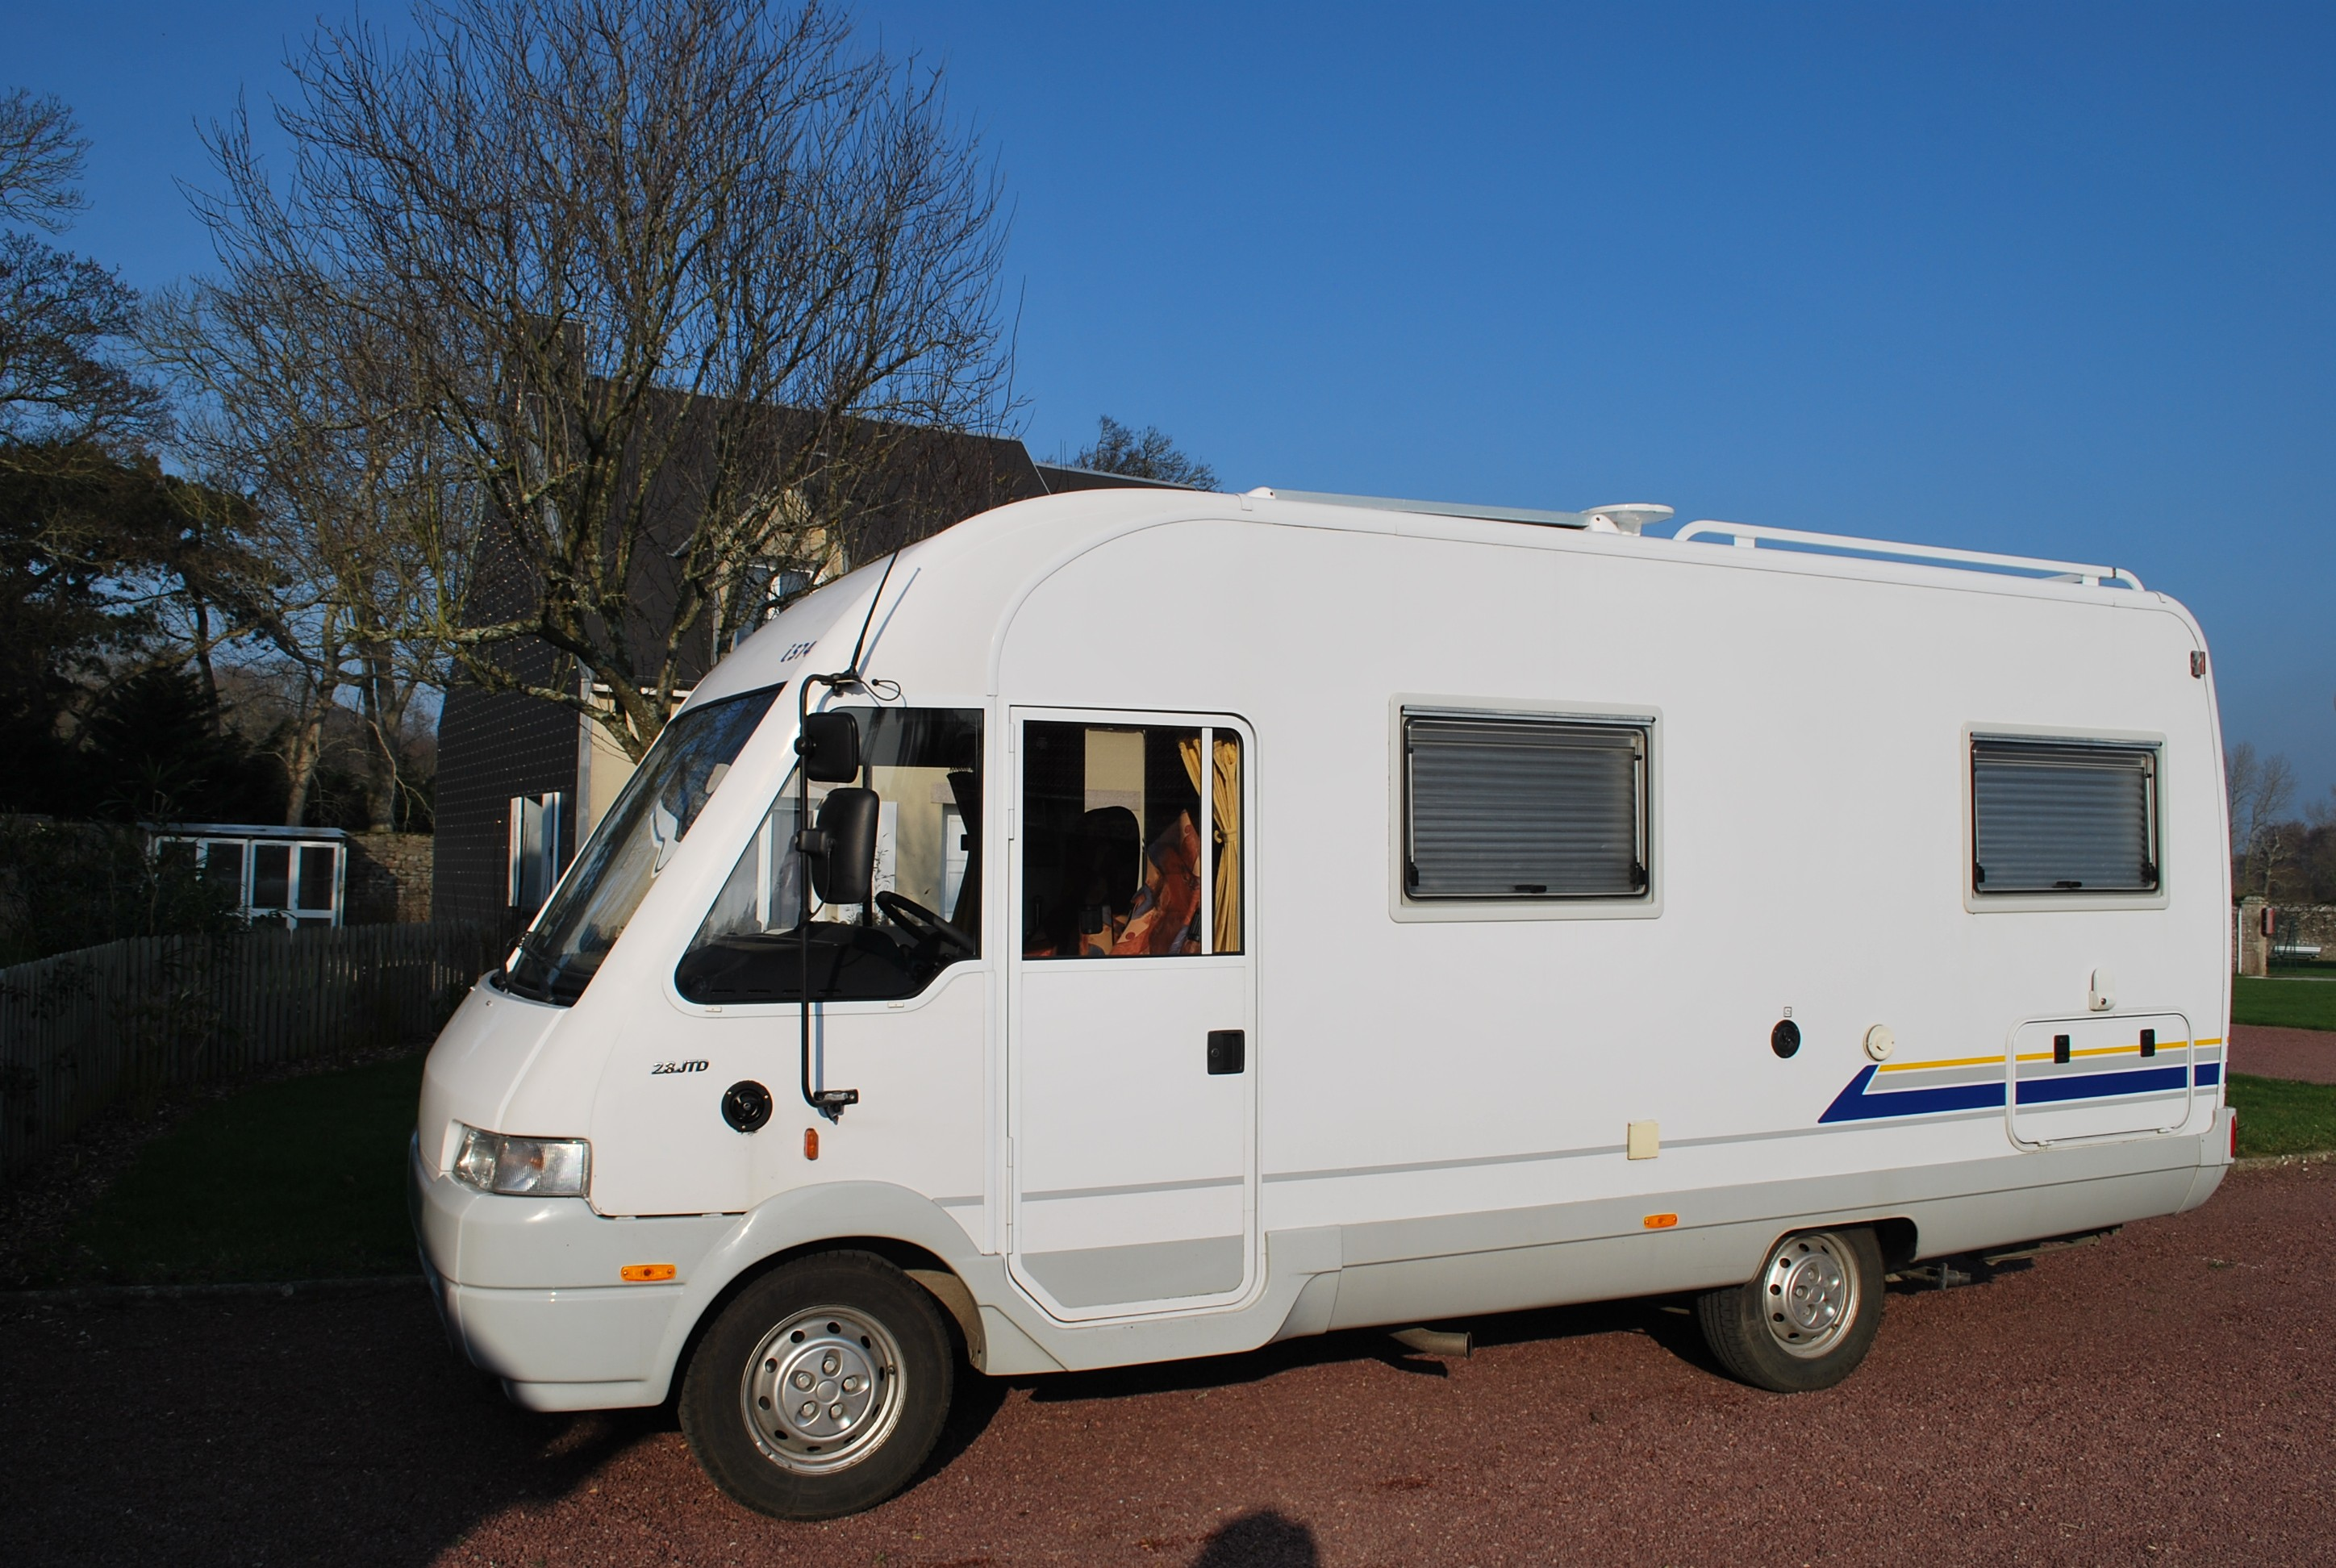 Vente camping car d occasion